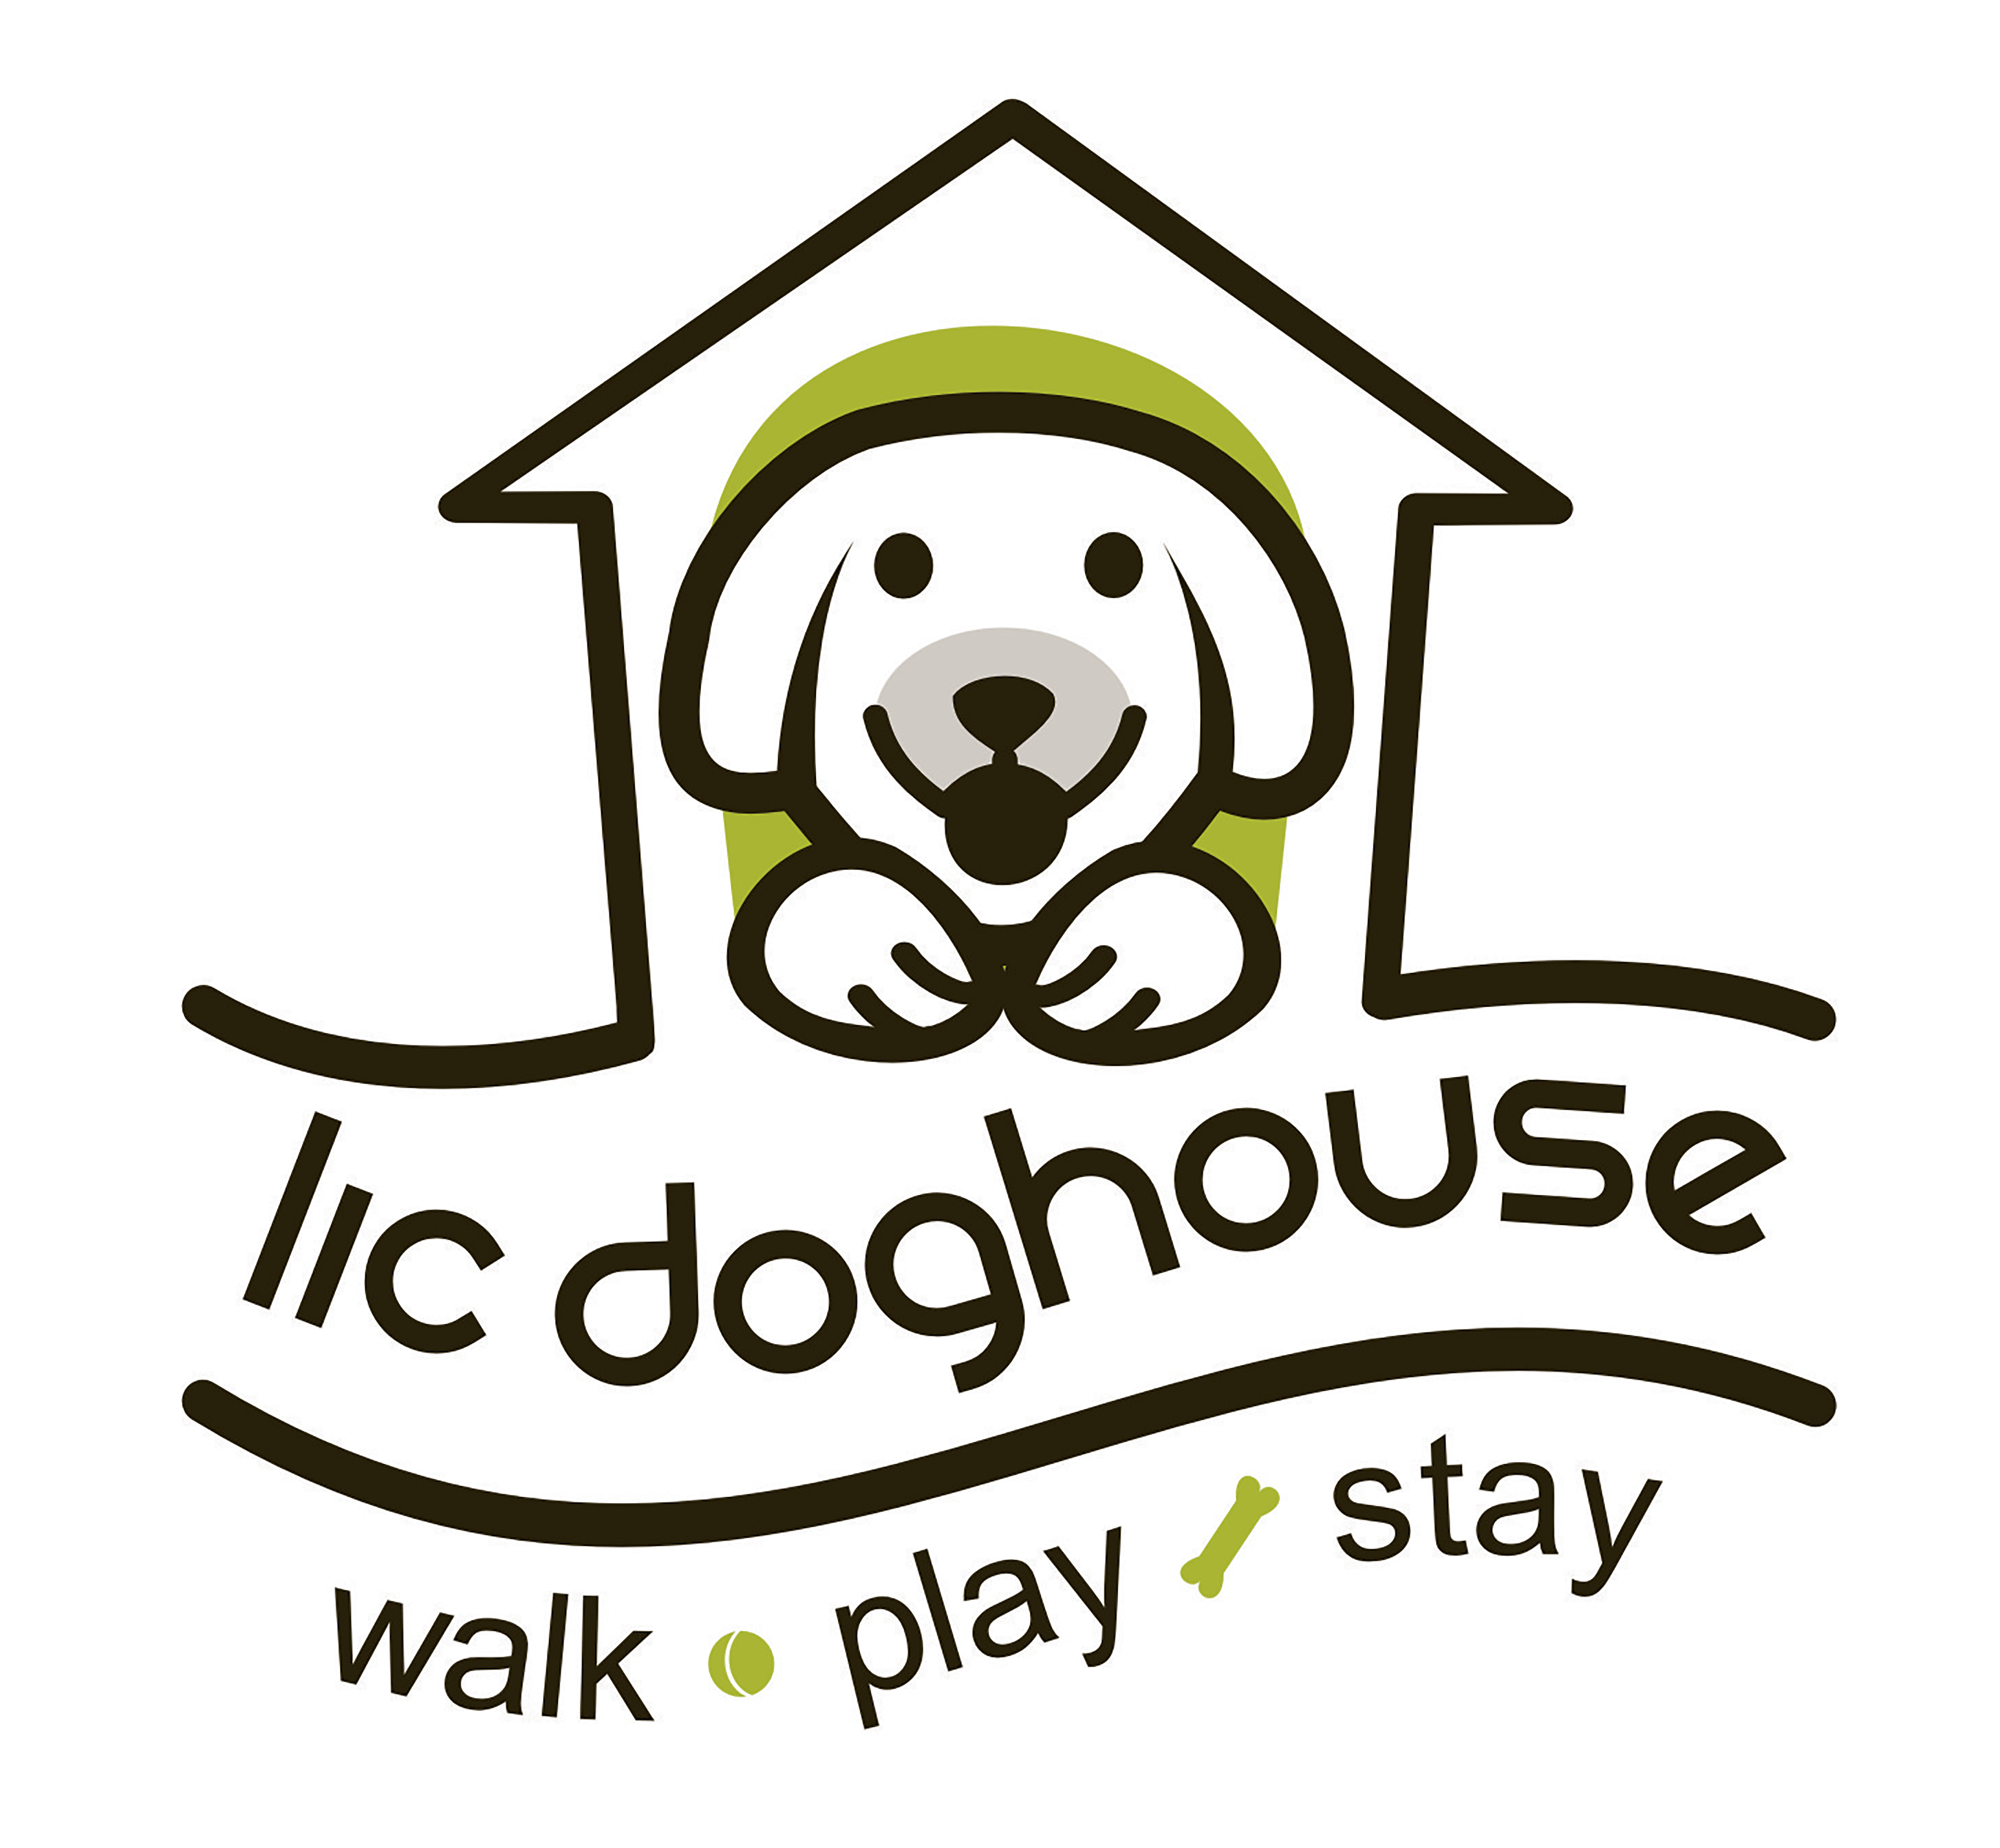 LIC Doghouse